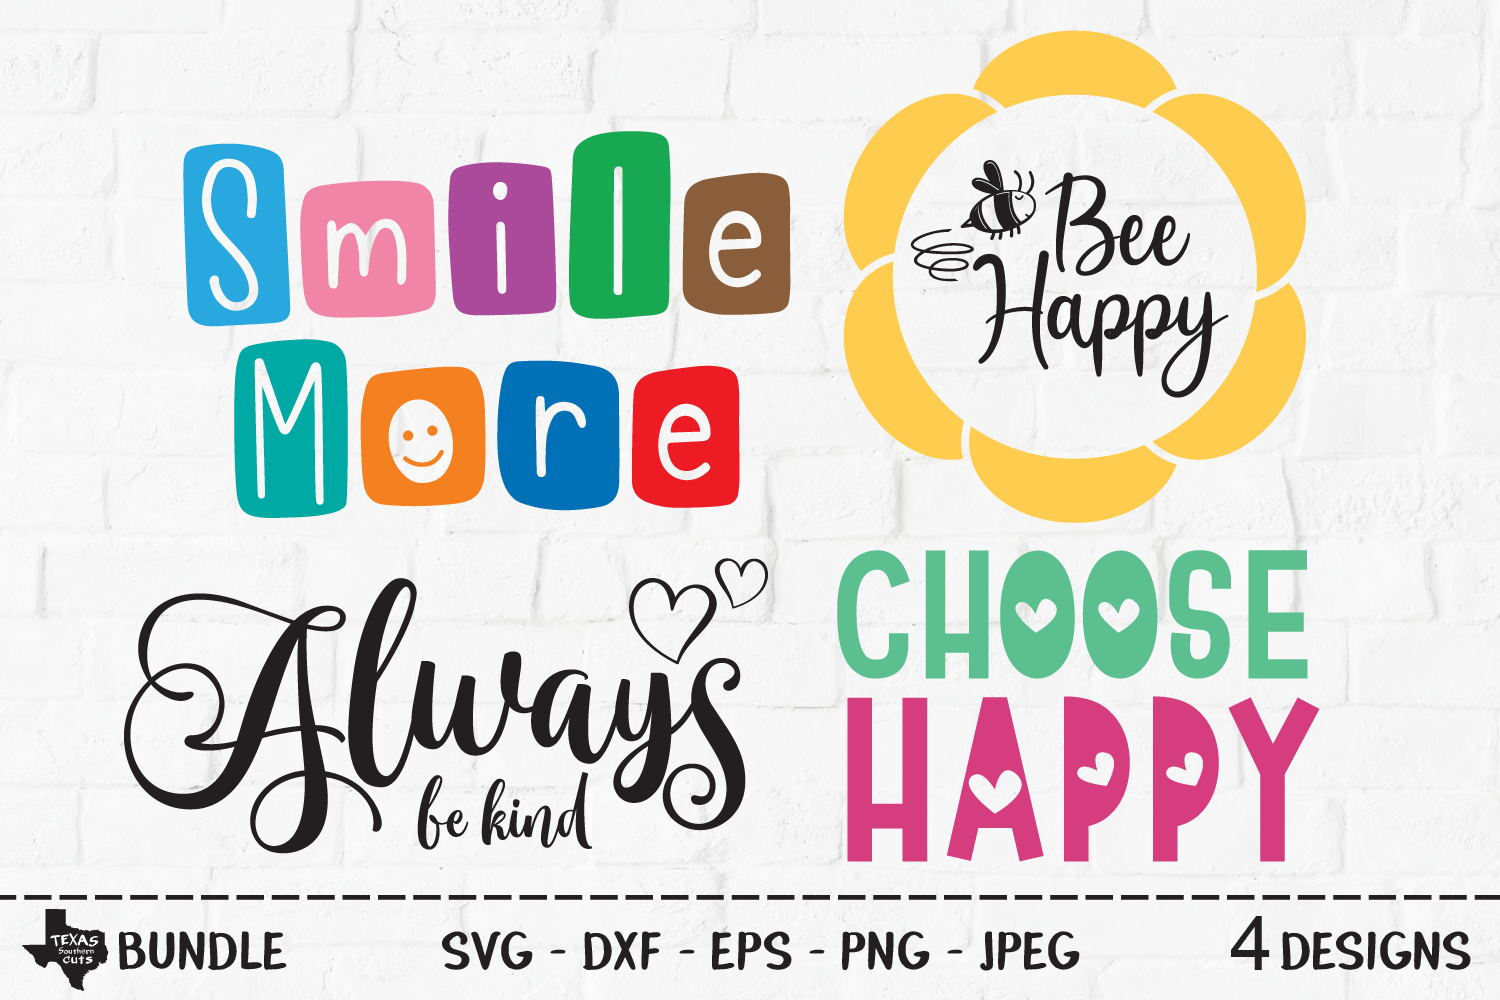 Download Free Inspirational Sayings Bundle Graphic By Texassoutherncuts for Cricut Explore, Silhouette and other cutting machines.